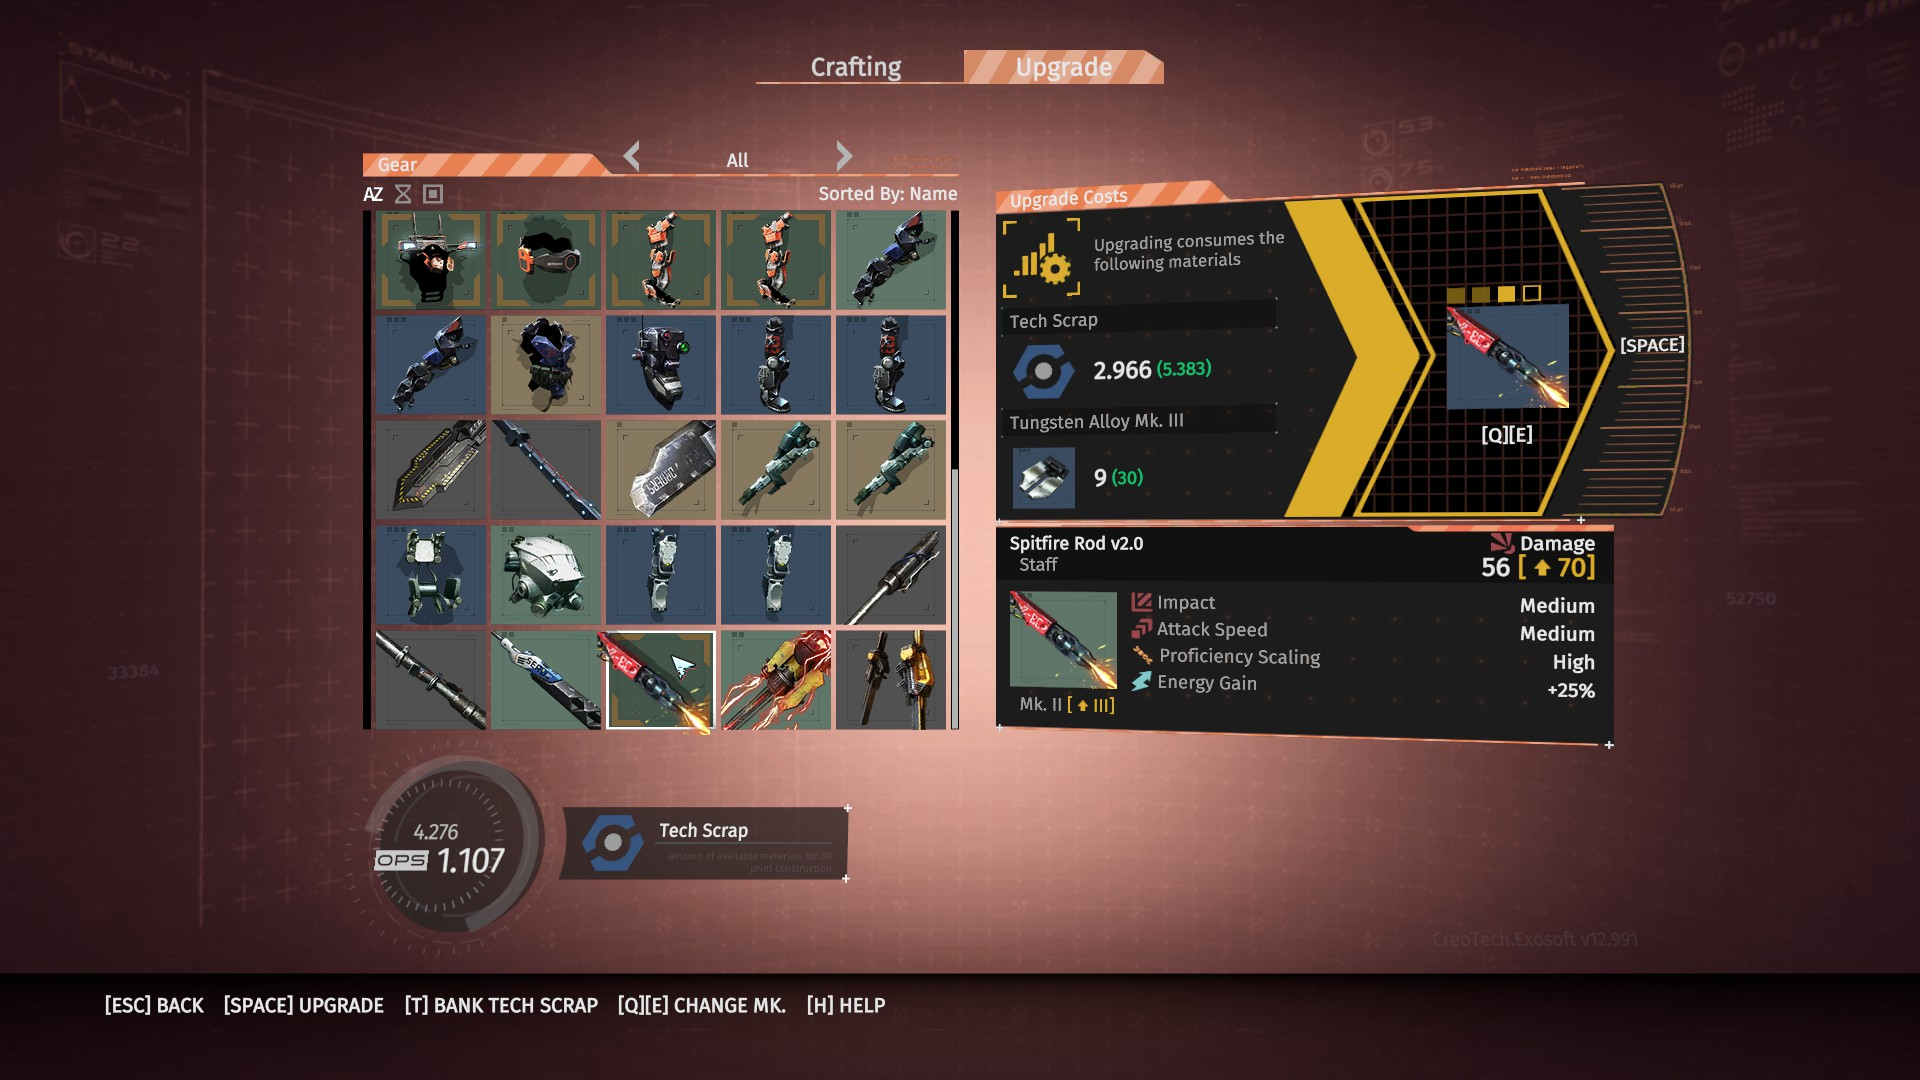 The Upgrade tab shows all gear you own, highlighting an item shows you what you need to upgrade it, including: Tech Scrap required, Components needed, and what Mark to choose.